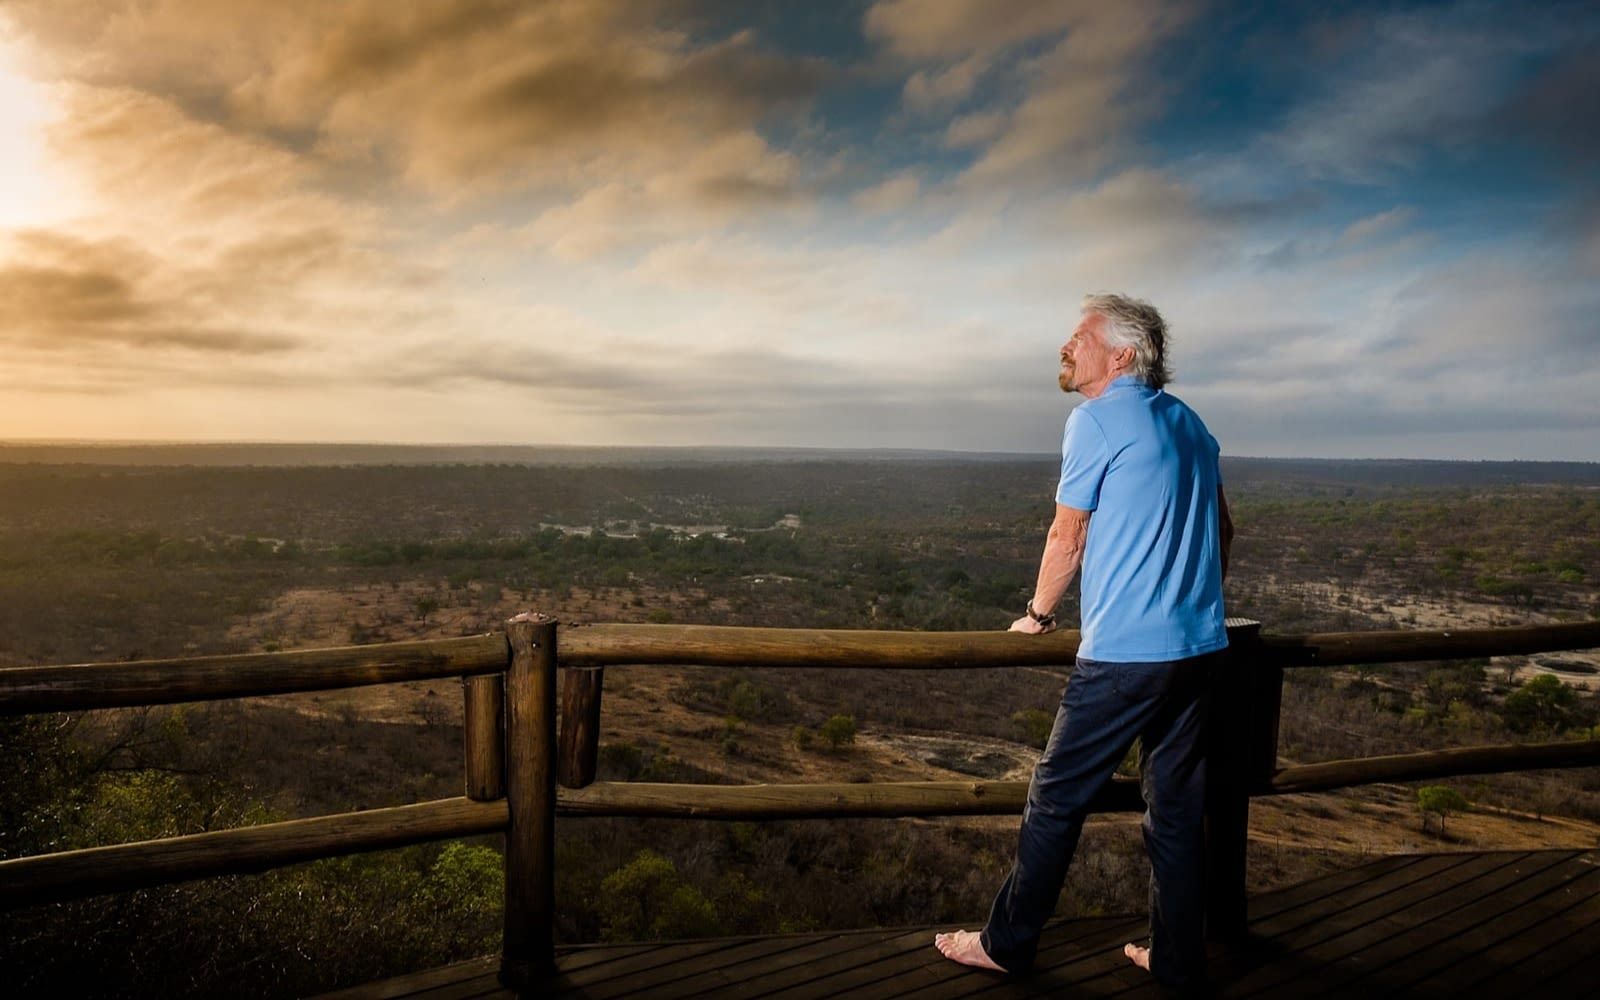 Richard Branson looks at the view at Ulusaba